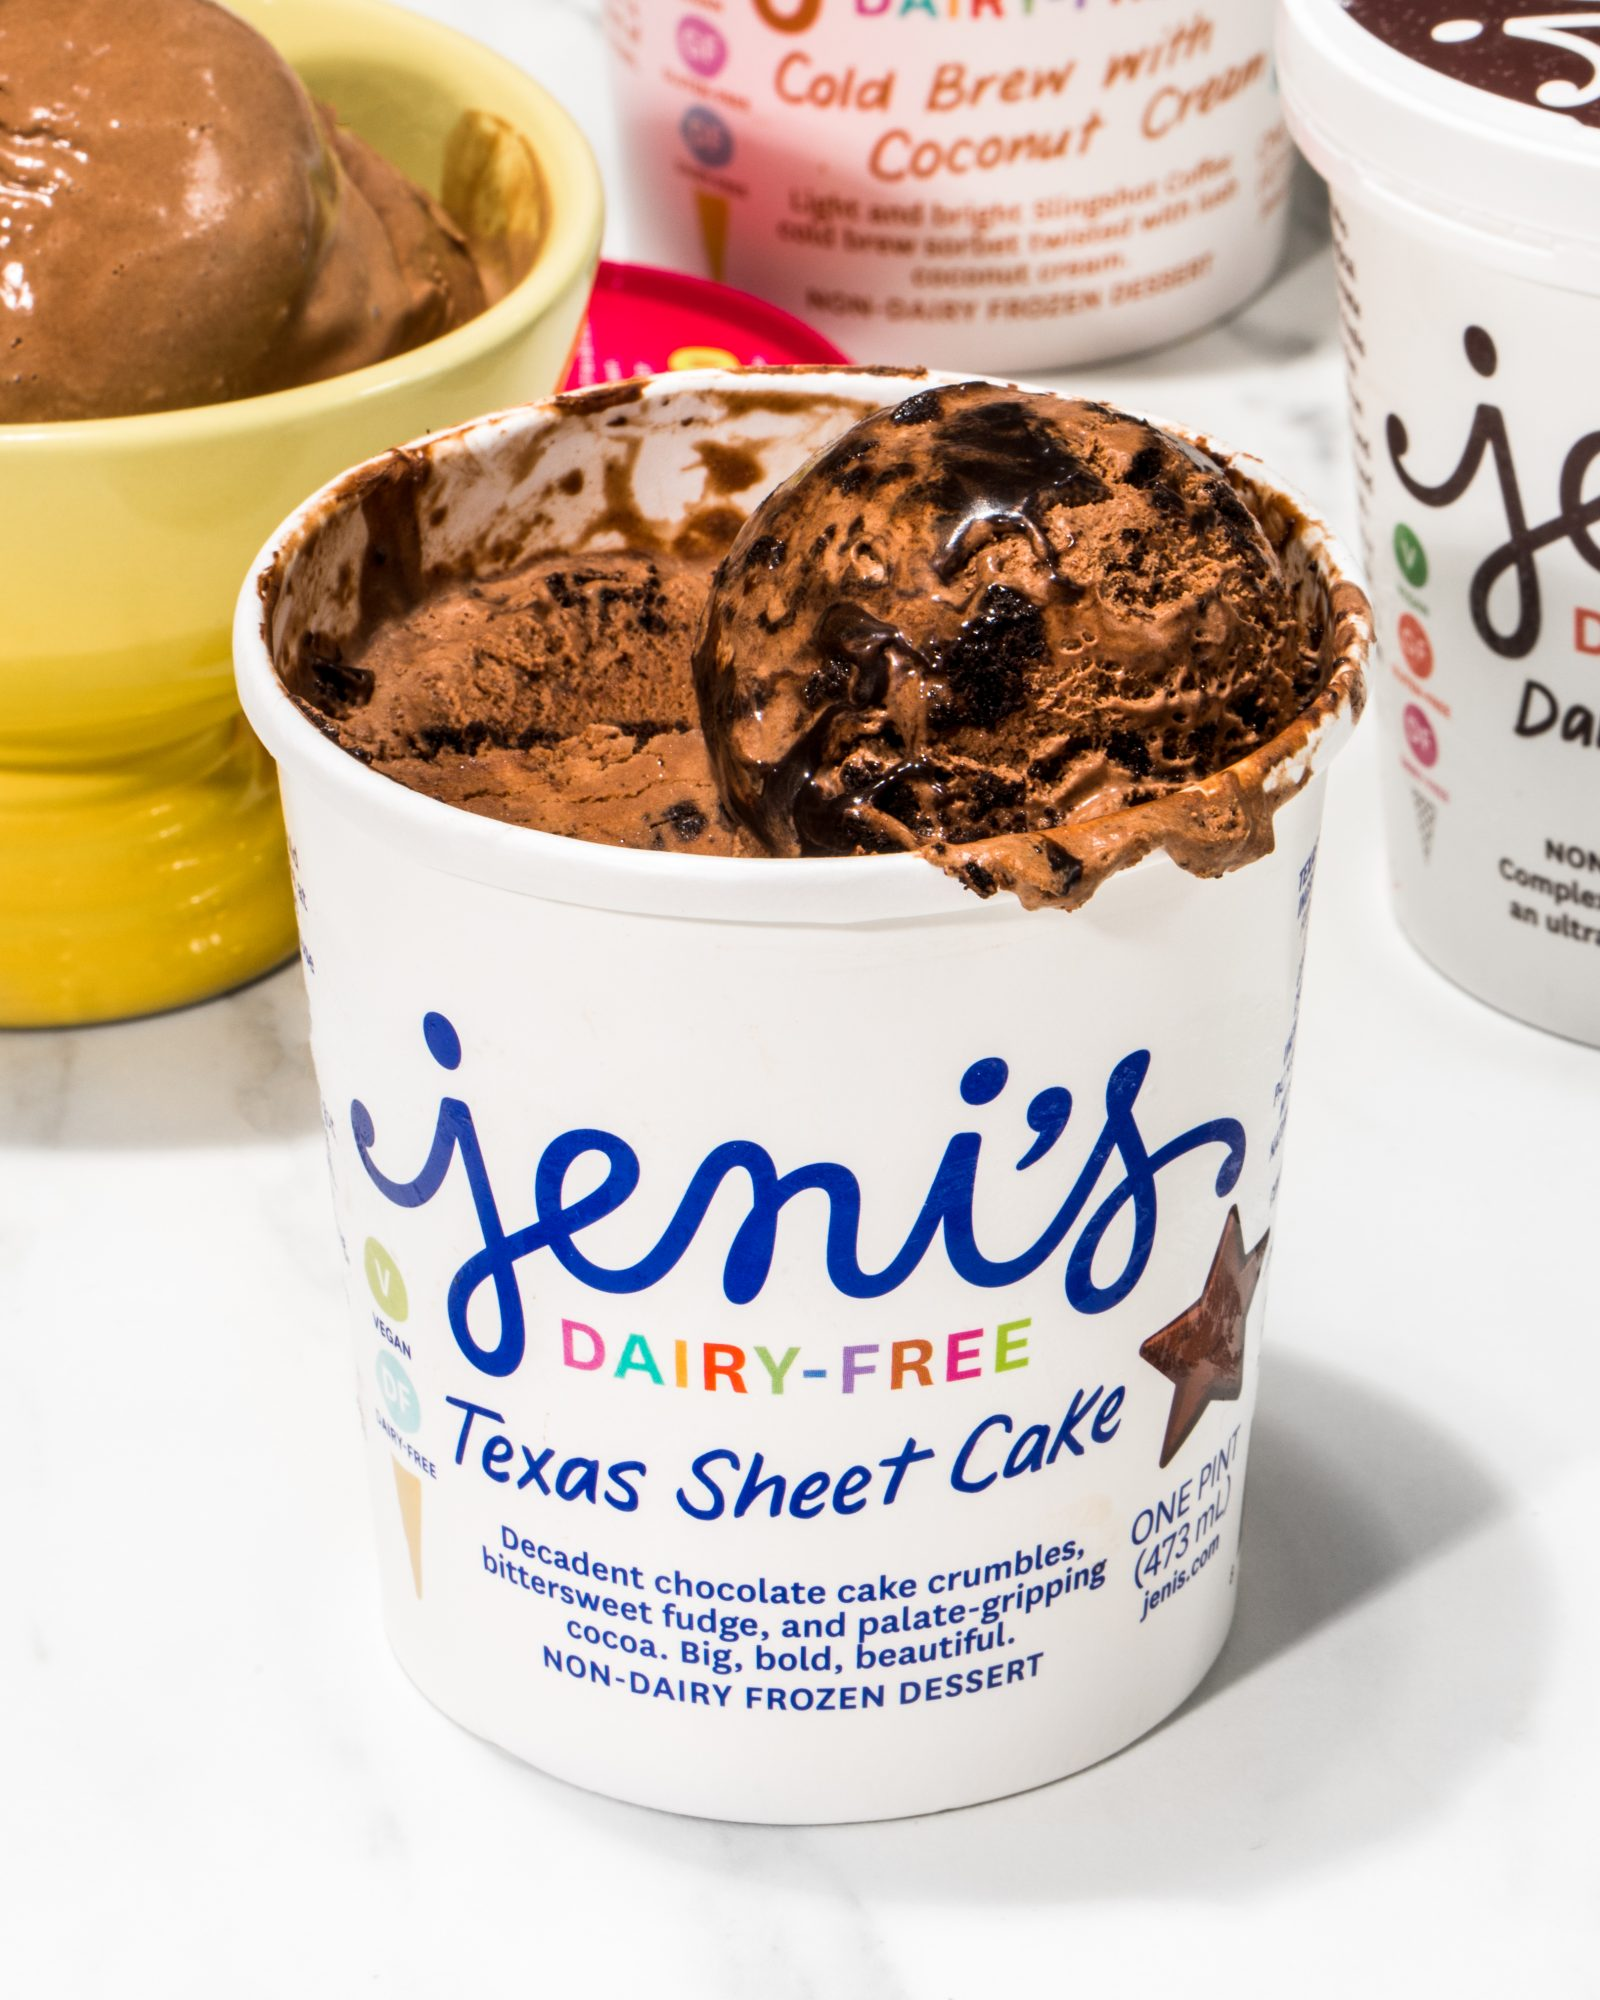 Jeni's Splendid Ice Creams Texas Sheet Cake Ice Cream